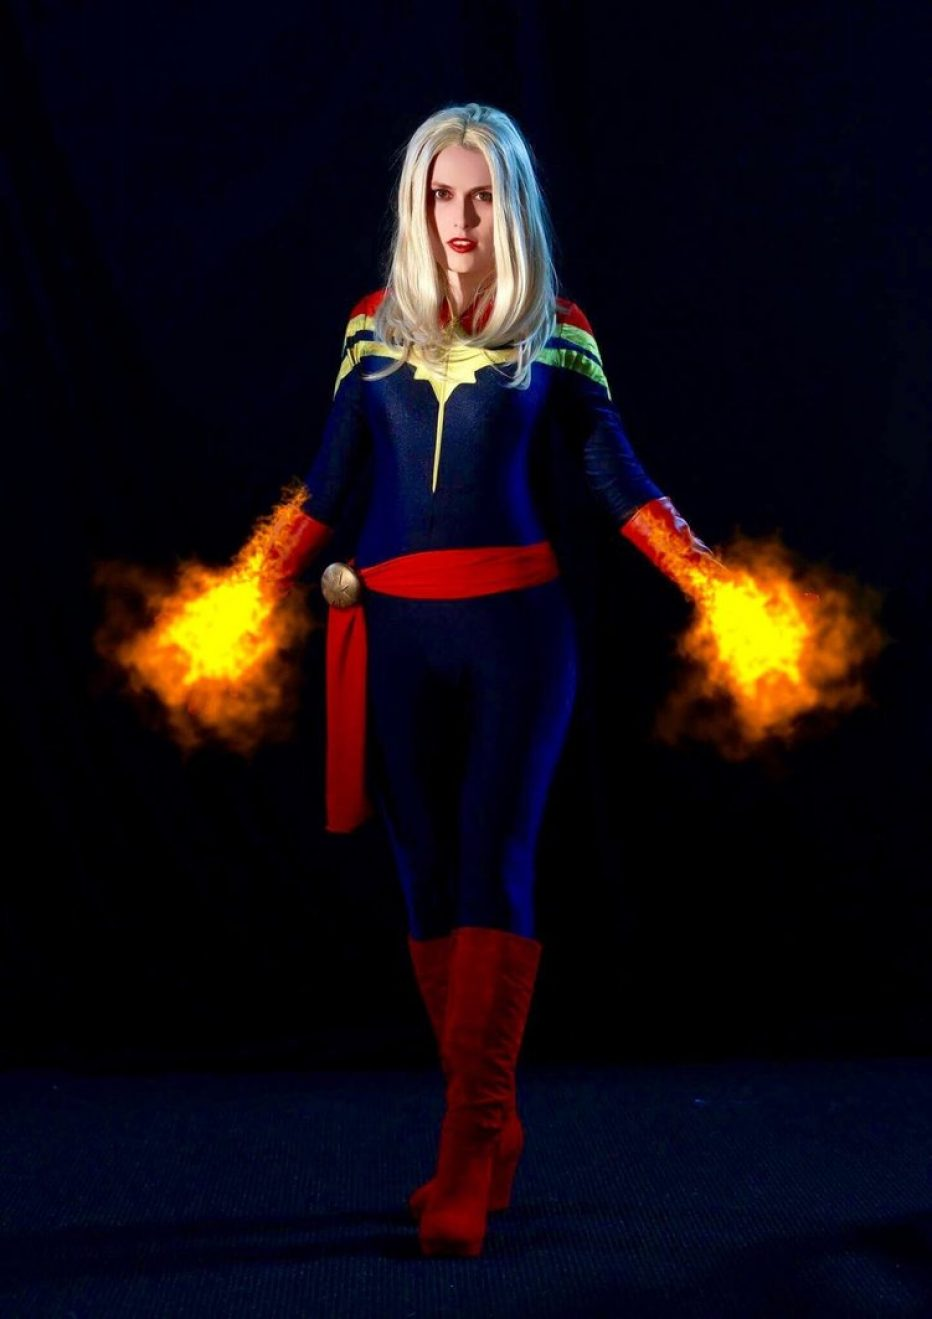 Captain Marvel on Photoshoot